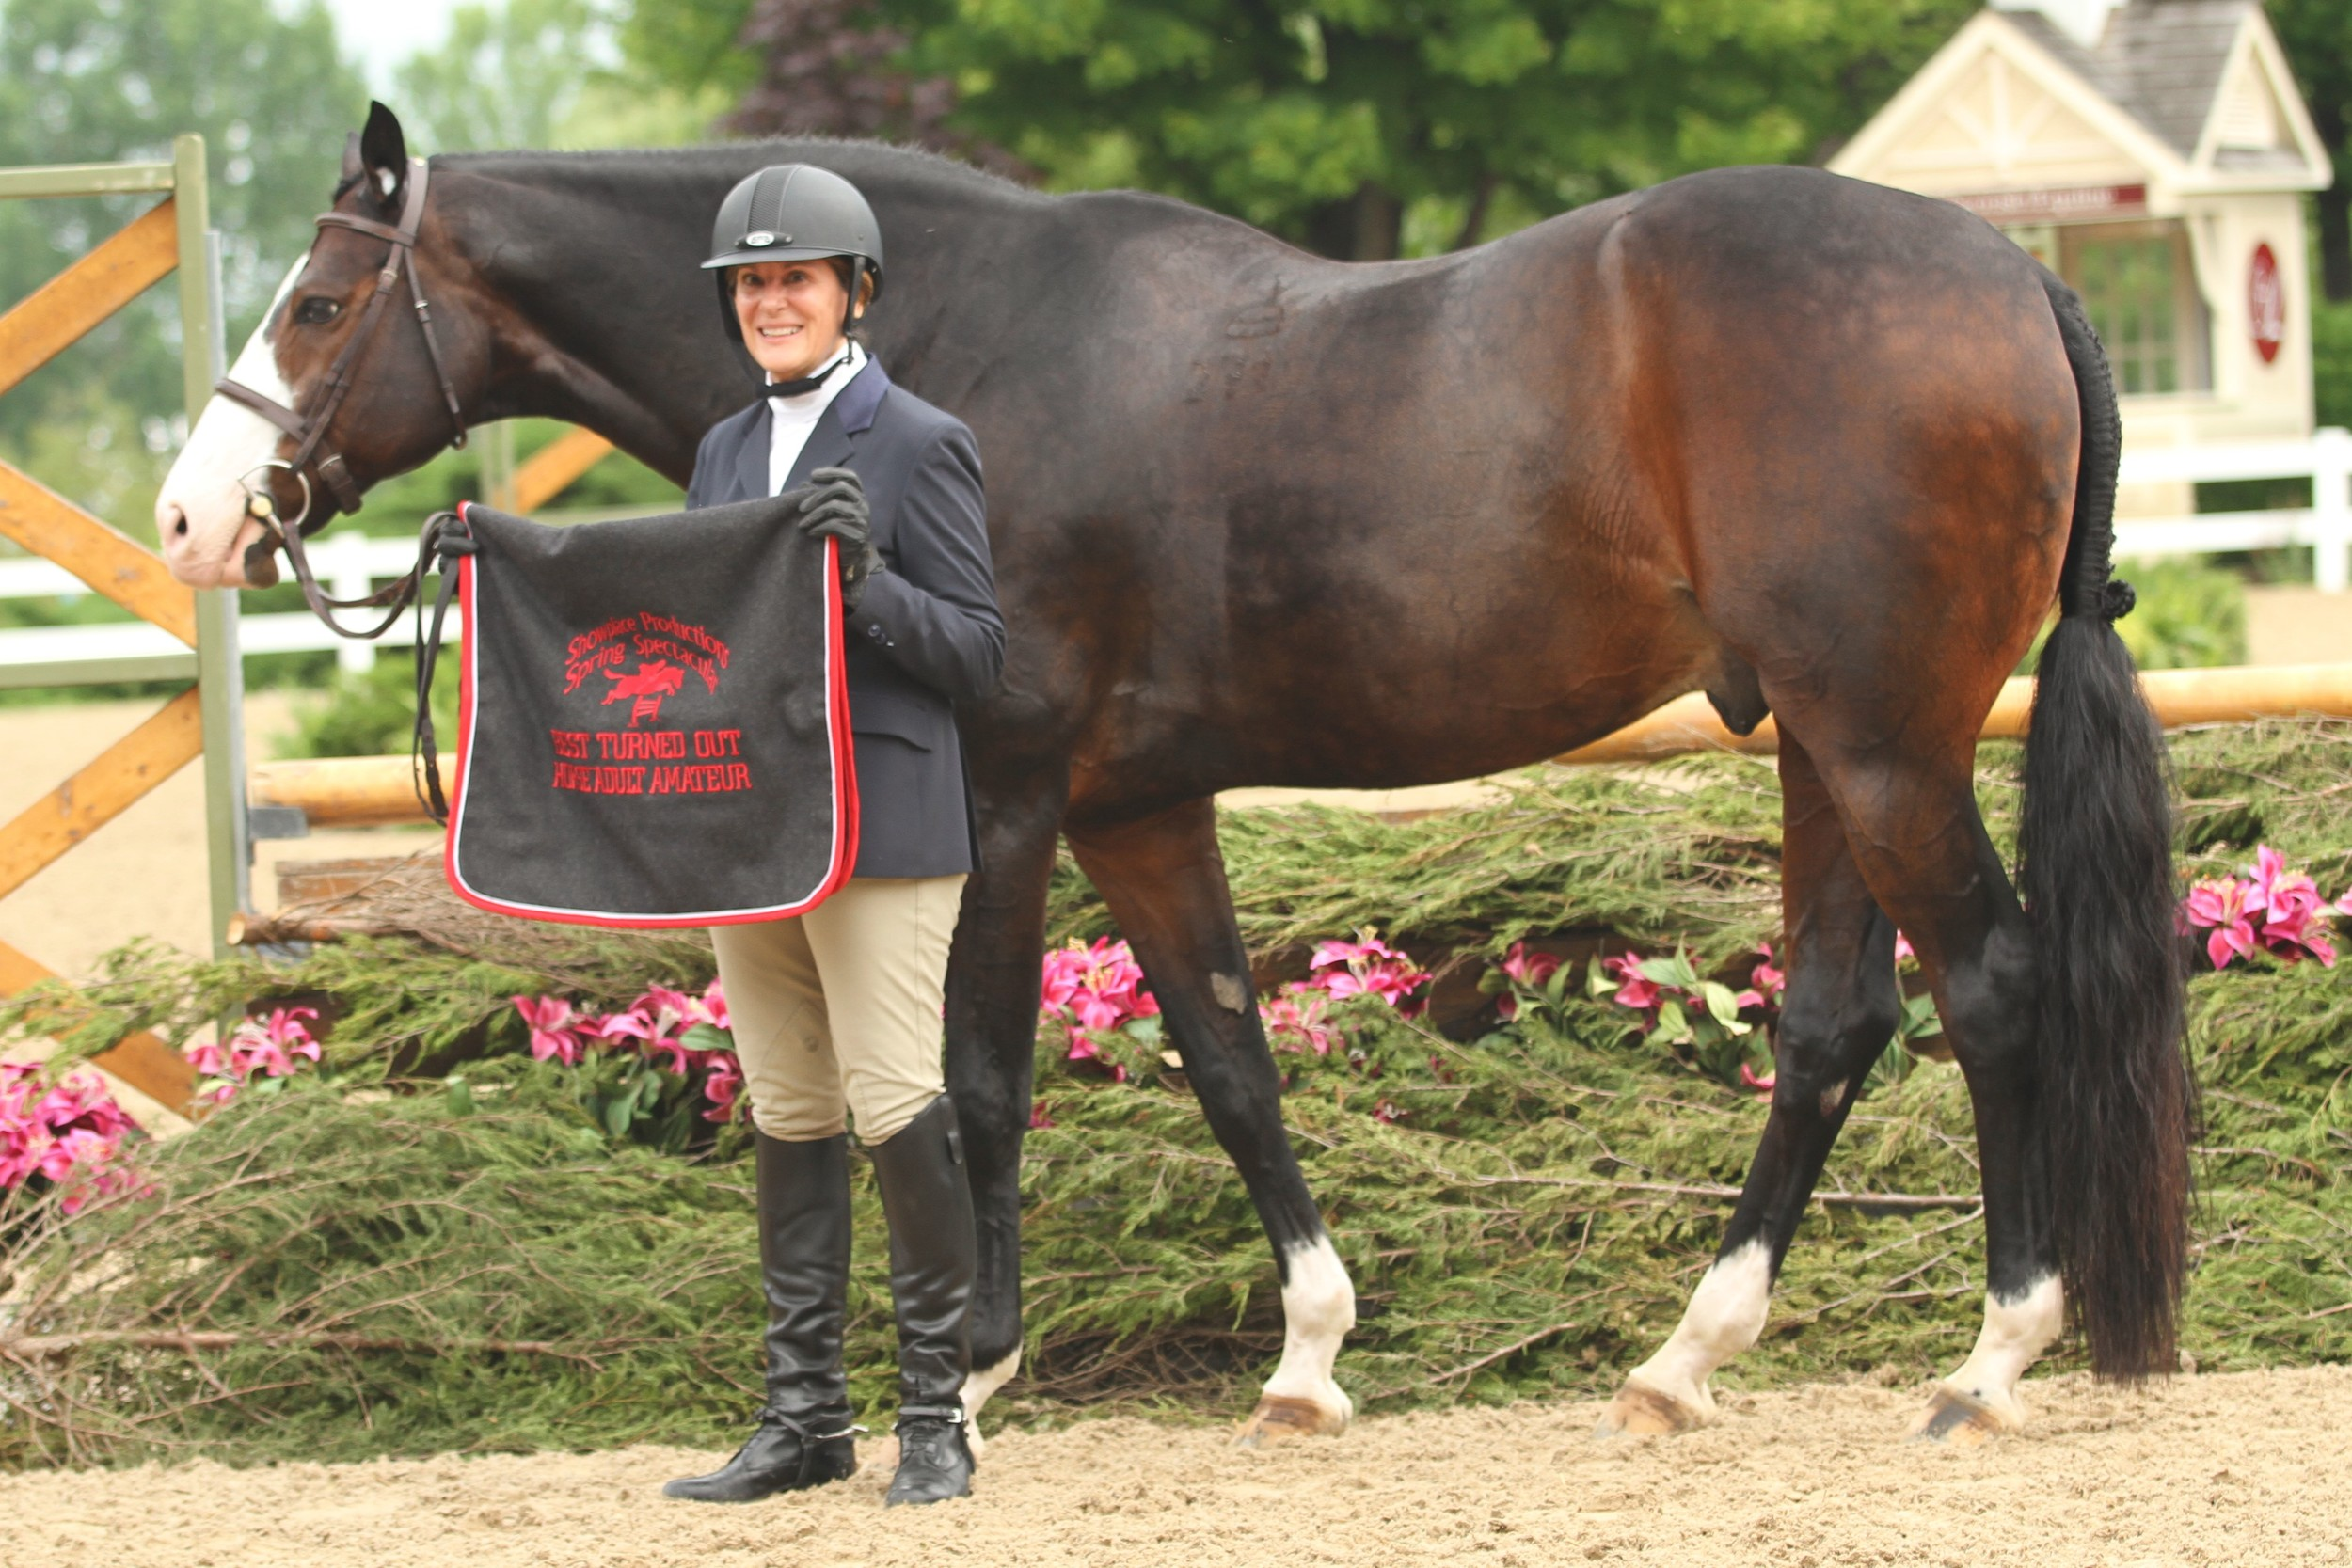 Best Turned Out Horse Adult Amateur    Playbook, owned and ridden by Beth Bailey